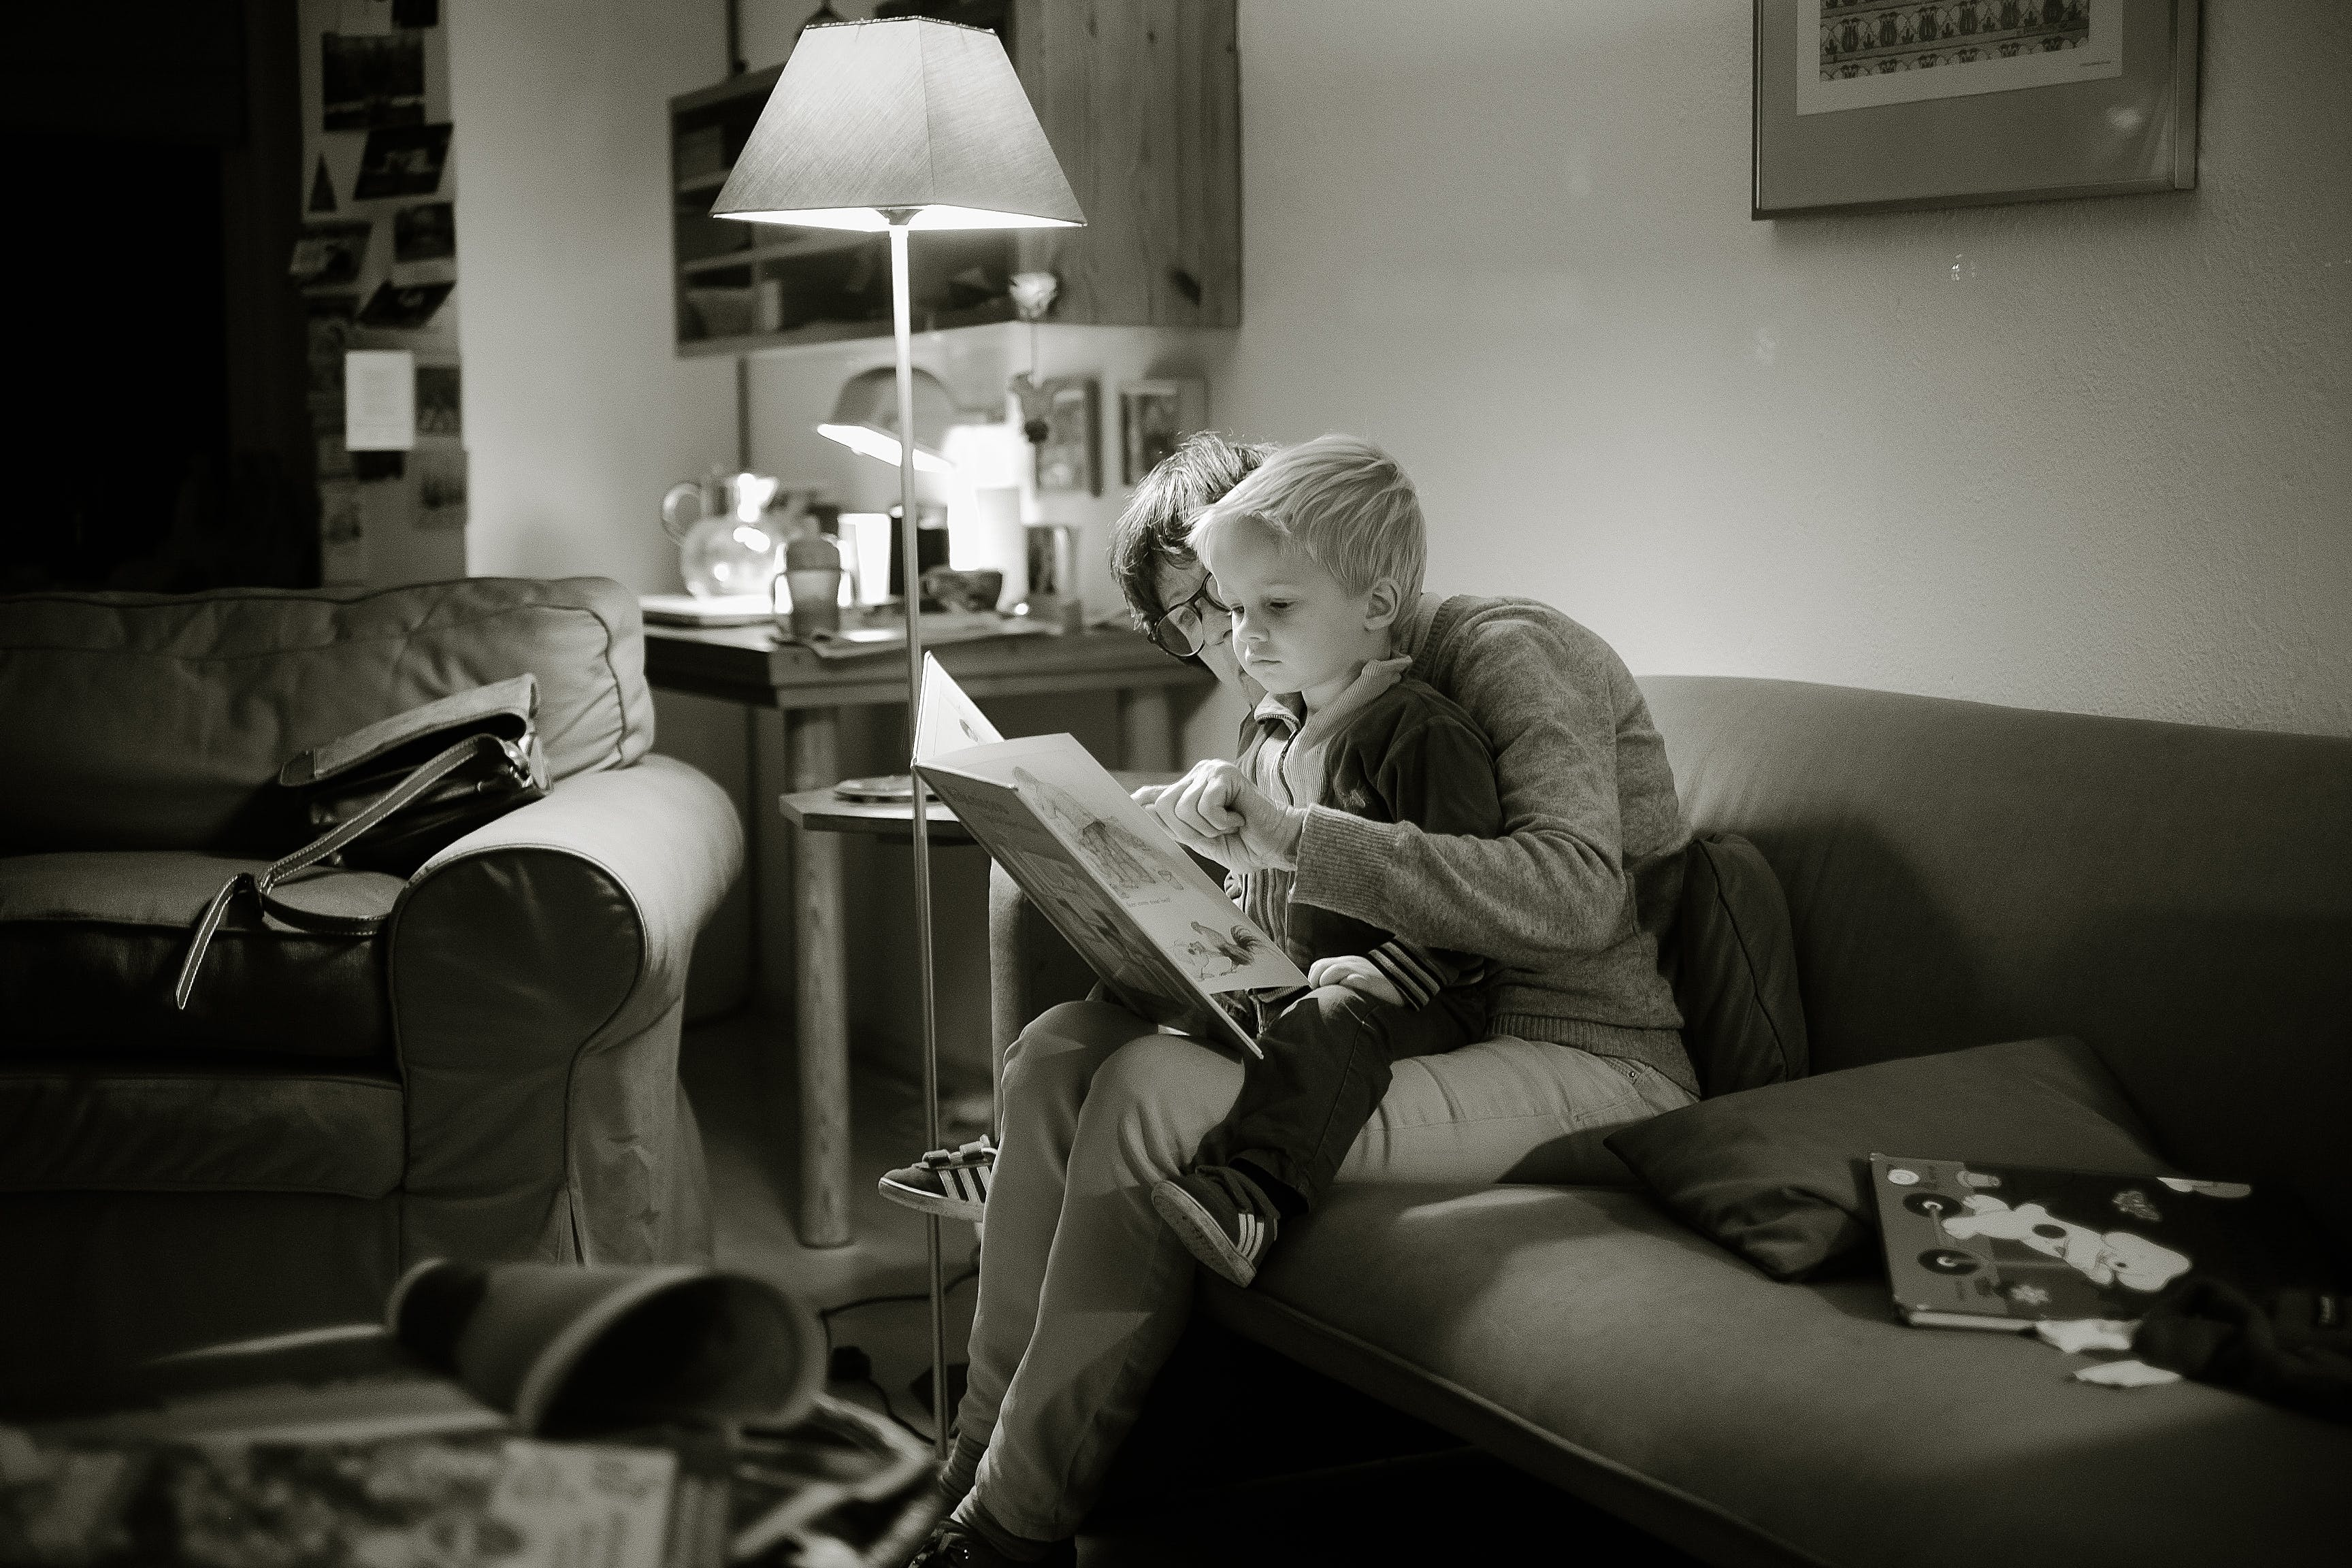 Grayscale Photography of Child on Lap of Woman While Reading Book